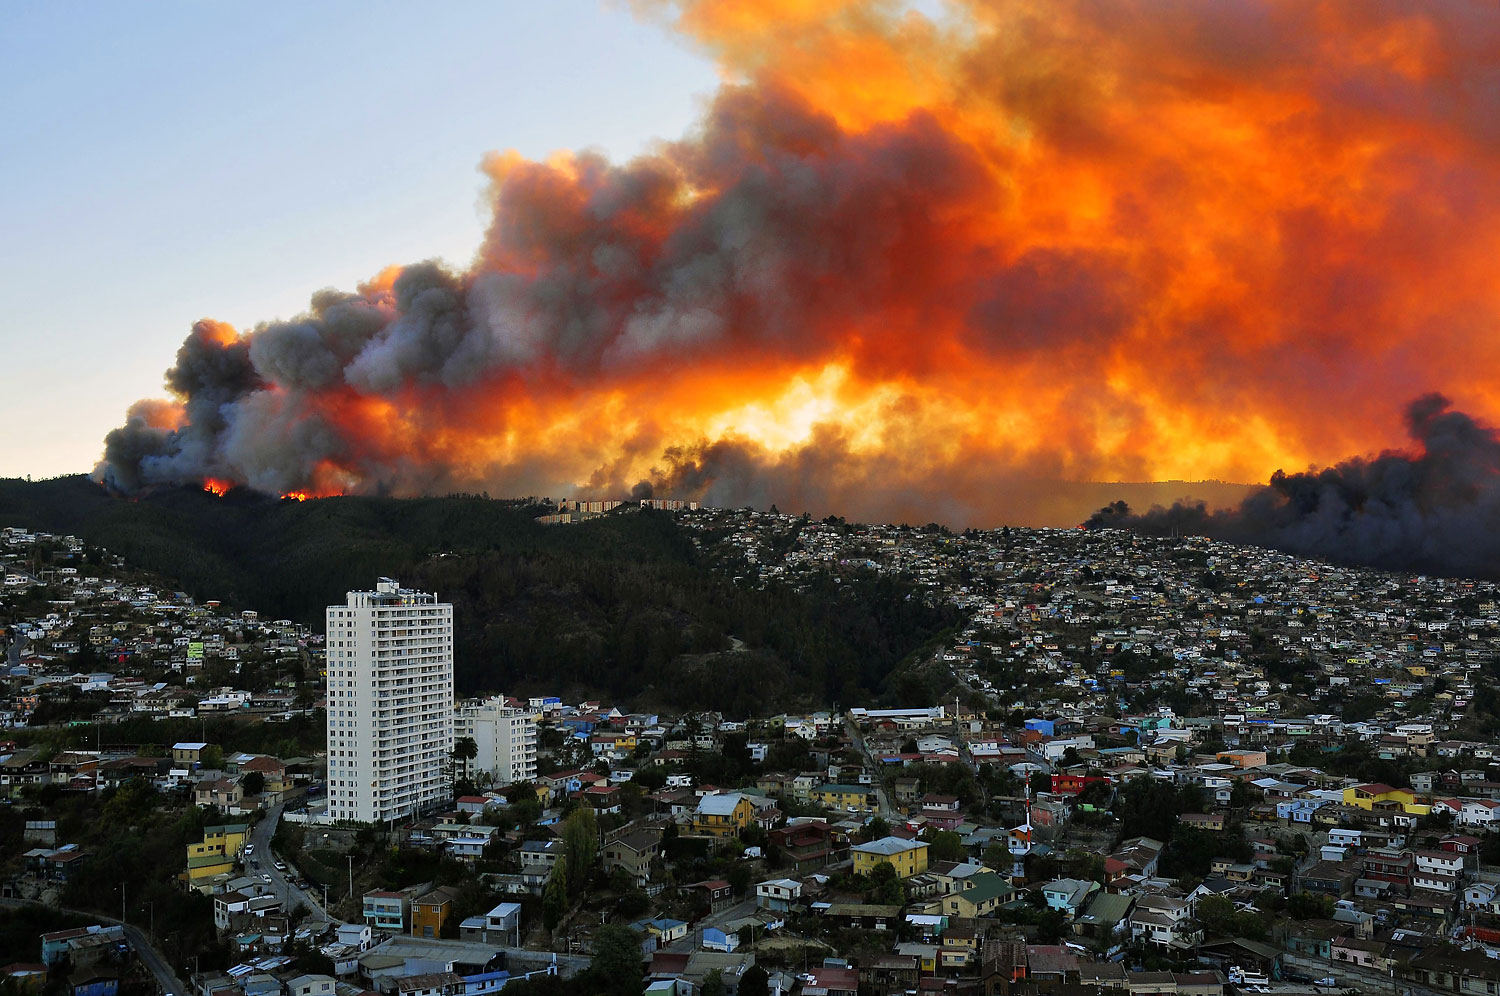 View of houses in flames during a fire in Valparaiso, 110 km west of Santiago, Chile, on April 12, 2014.